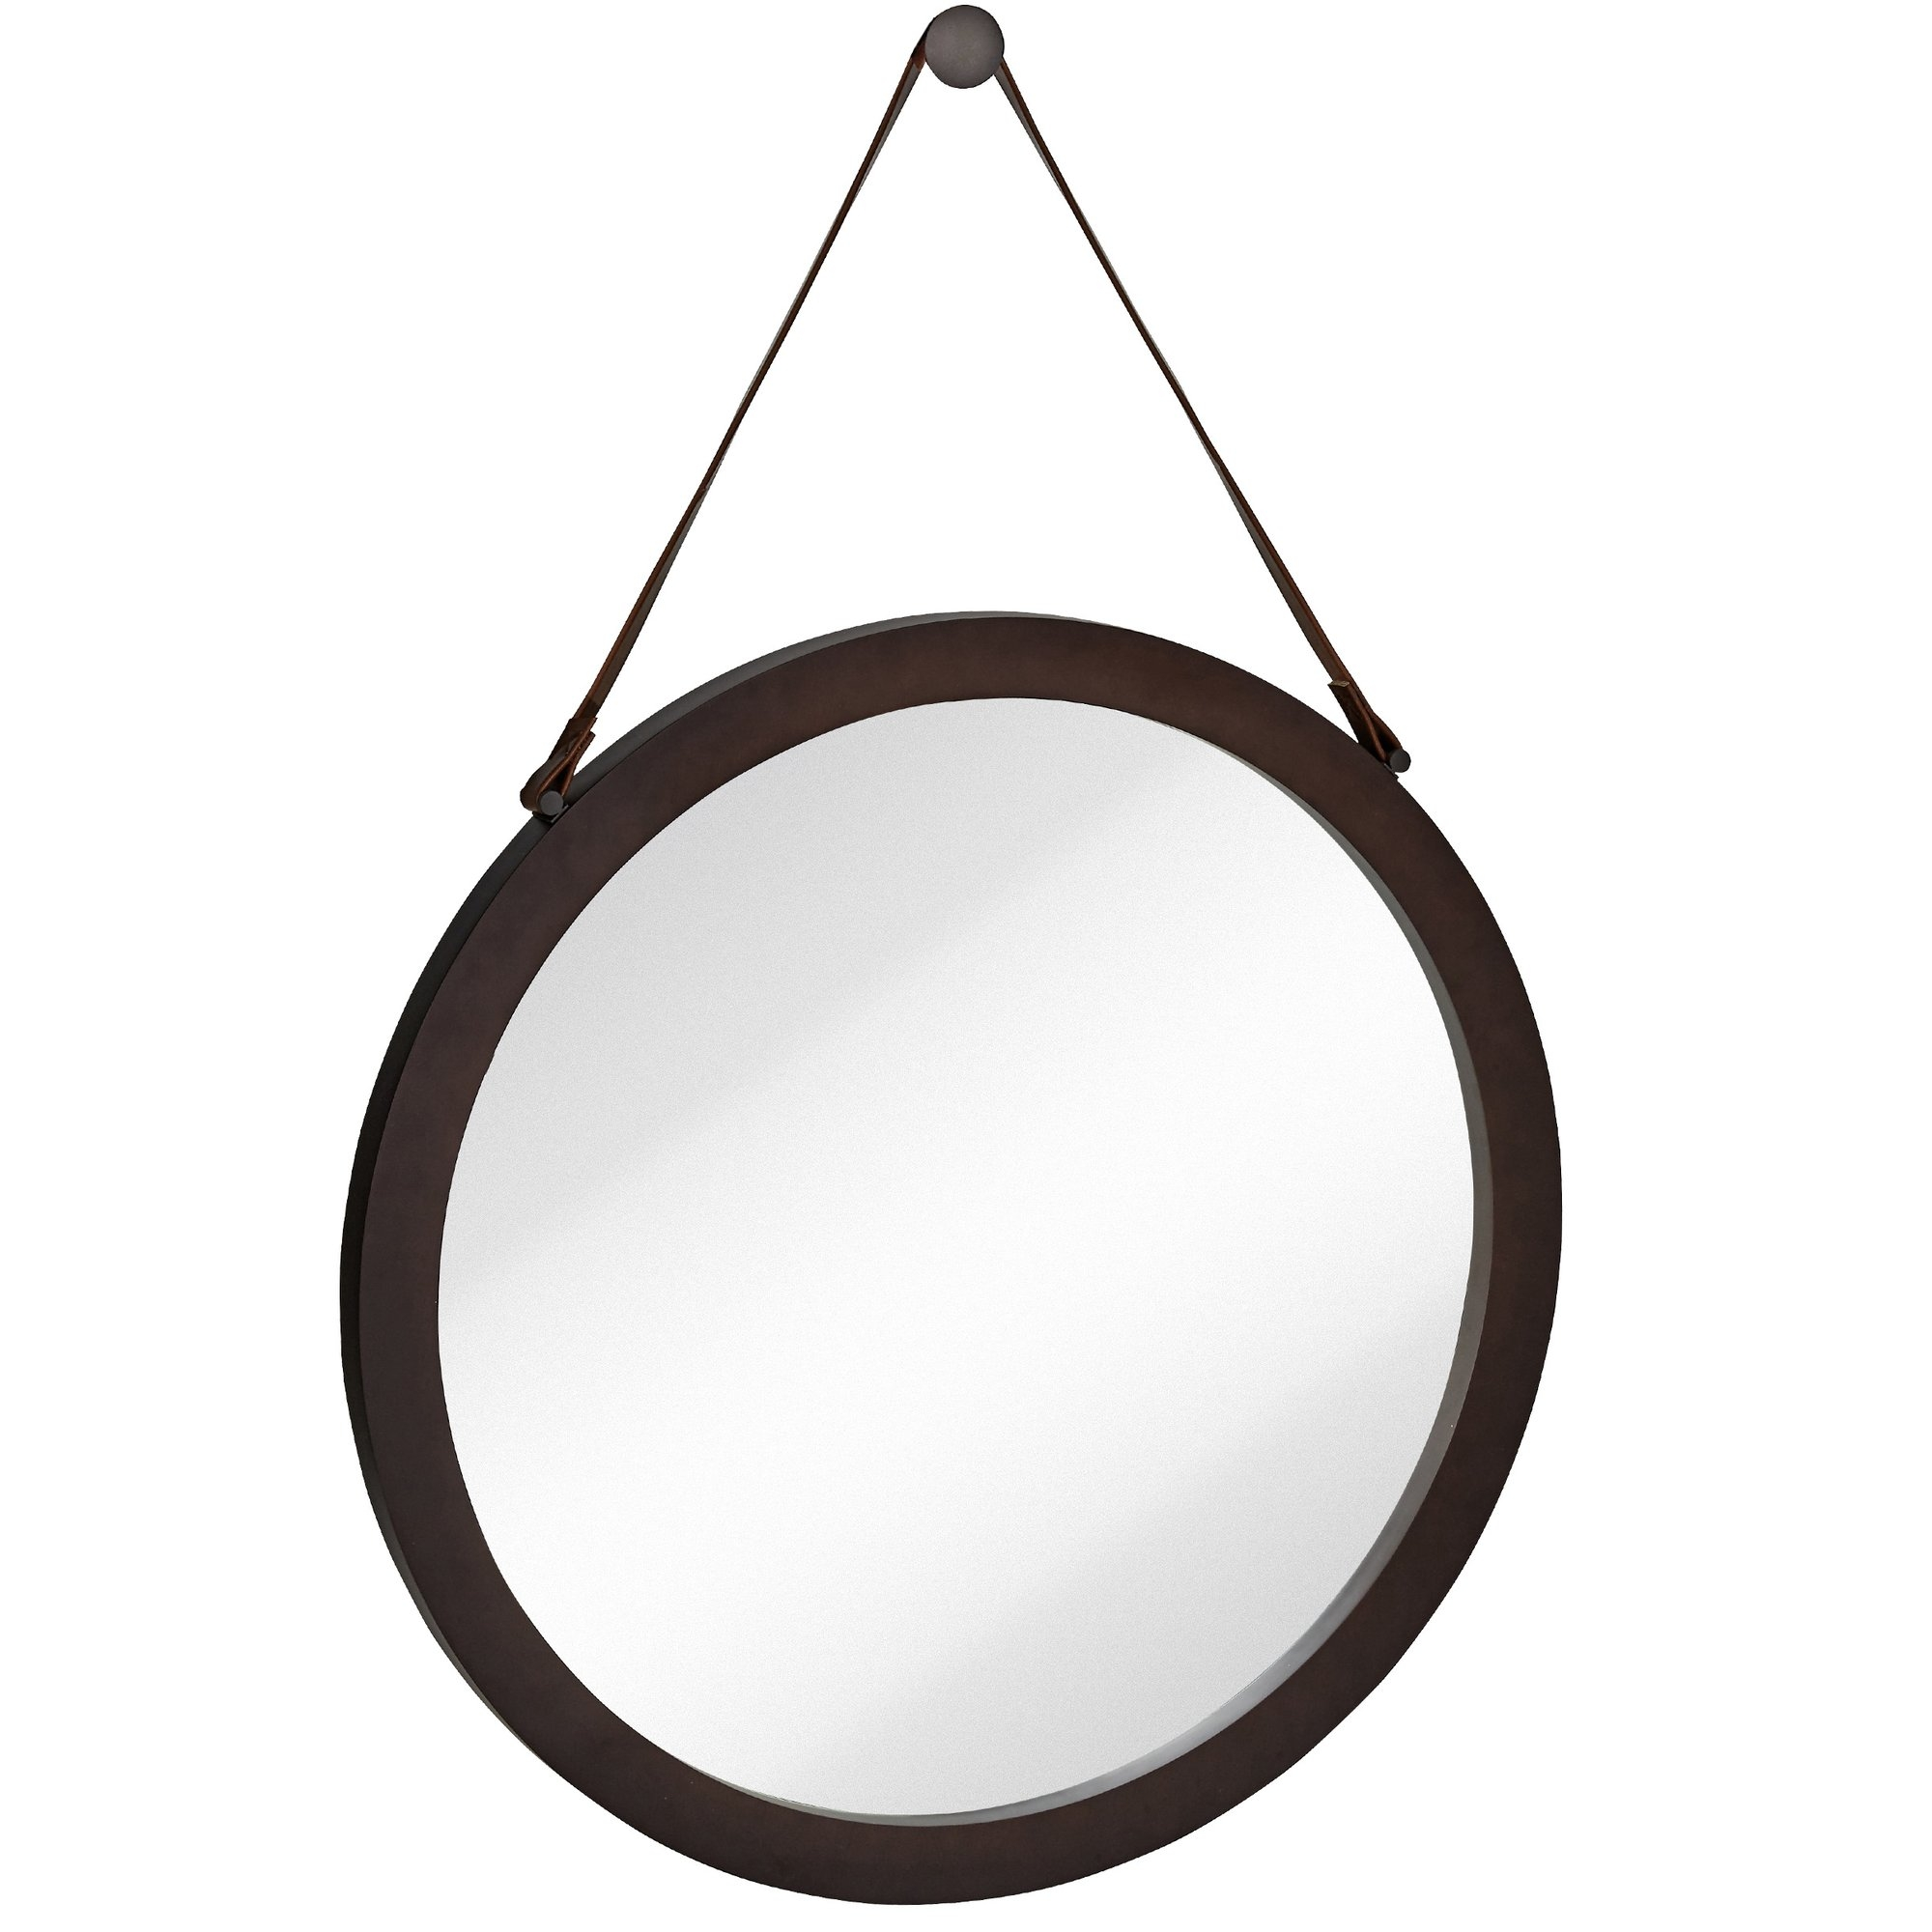 Majestic Mirror Round Urban Modern Leather Strap Decorative In Round Leather Mirror (Image 7 of 15)